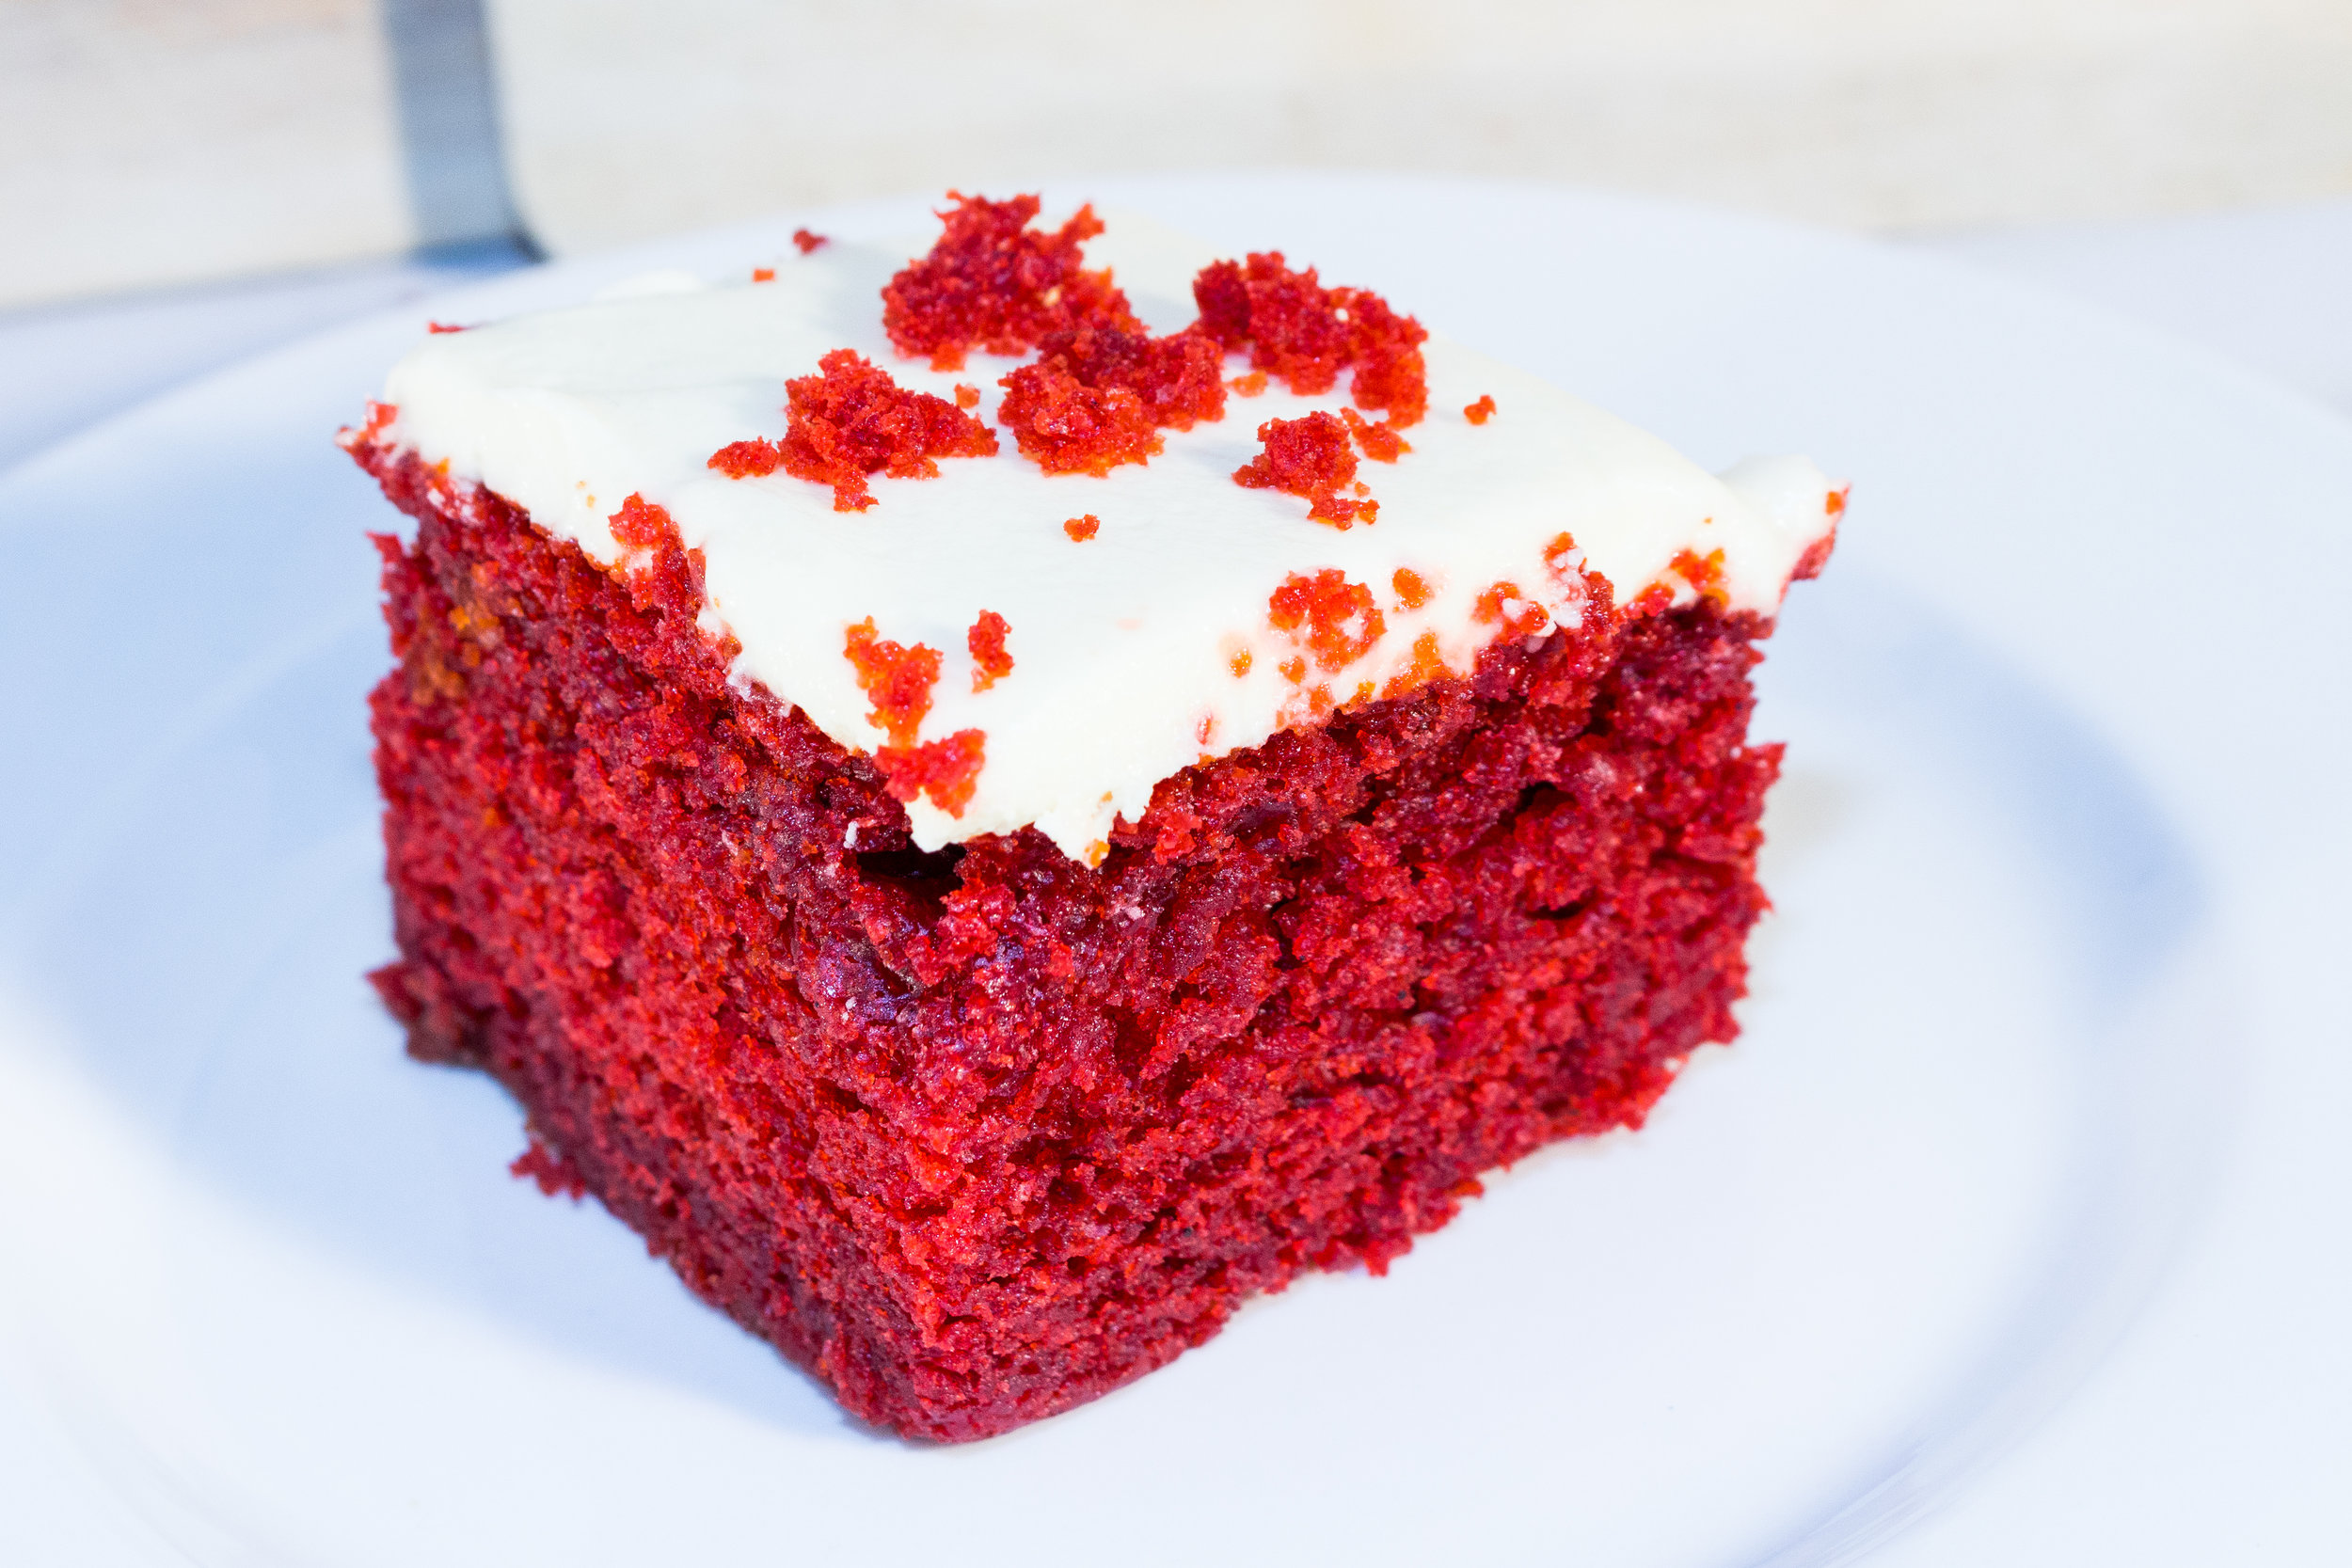 RED VELVET CAKE ² ⁴ ⁷ - A DISTINCT CHOCOLATE FLAVORED CAKE TOPPED WITH A THICK LAYER OF DELICIOUS CREAM CHEESE FROSTING